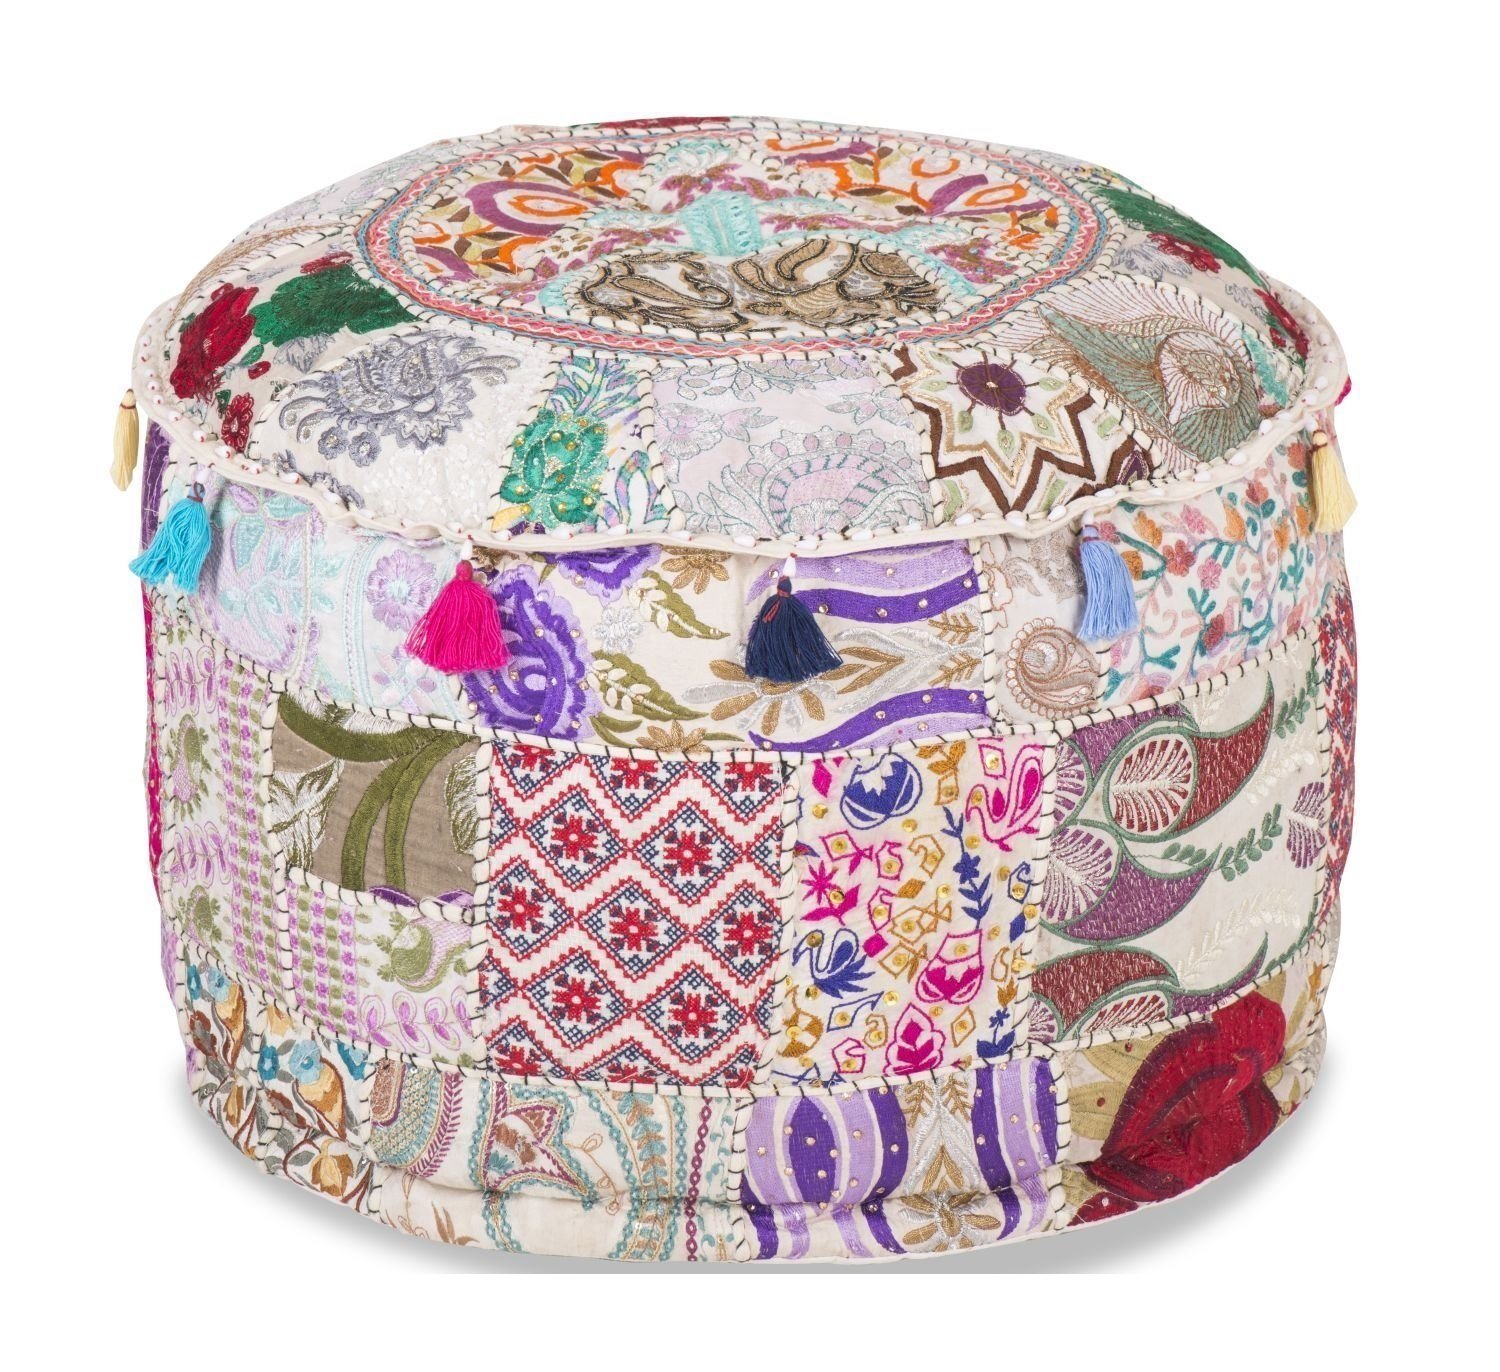 Indian Living Room Pouf, Foot Stool, Round Ottoman Cover Pouf,Traditional Handmade Decorative Patchwork Ottoman Cover,Indian Home Decor Cotton Cushion Ottoman Cover 22x15